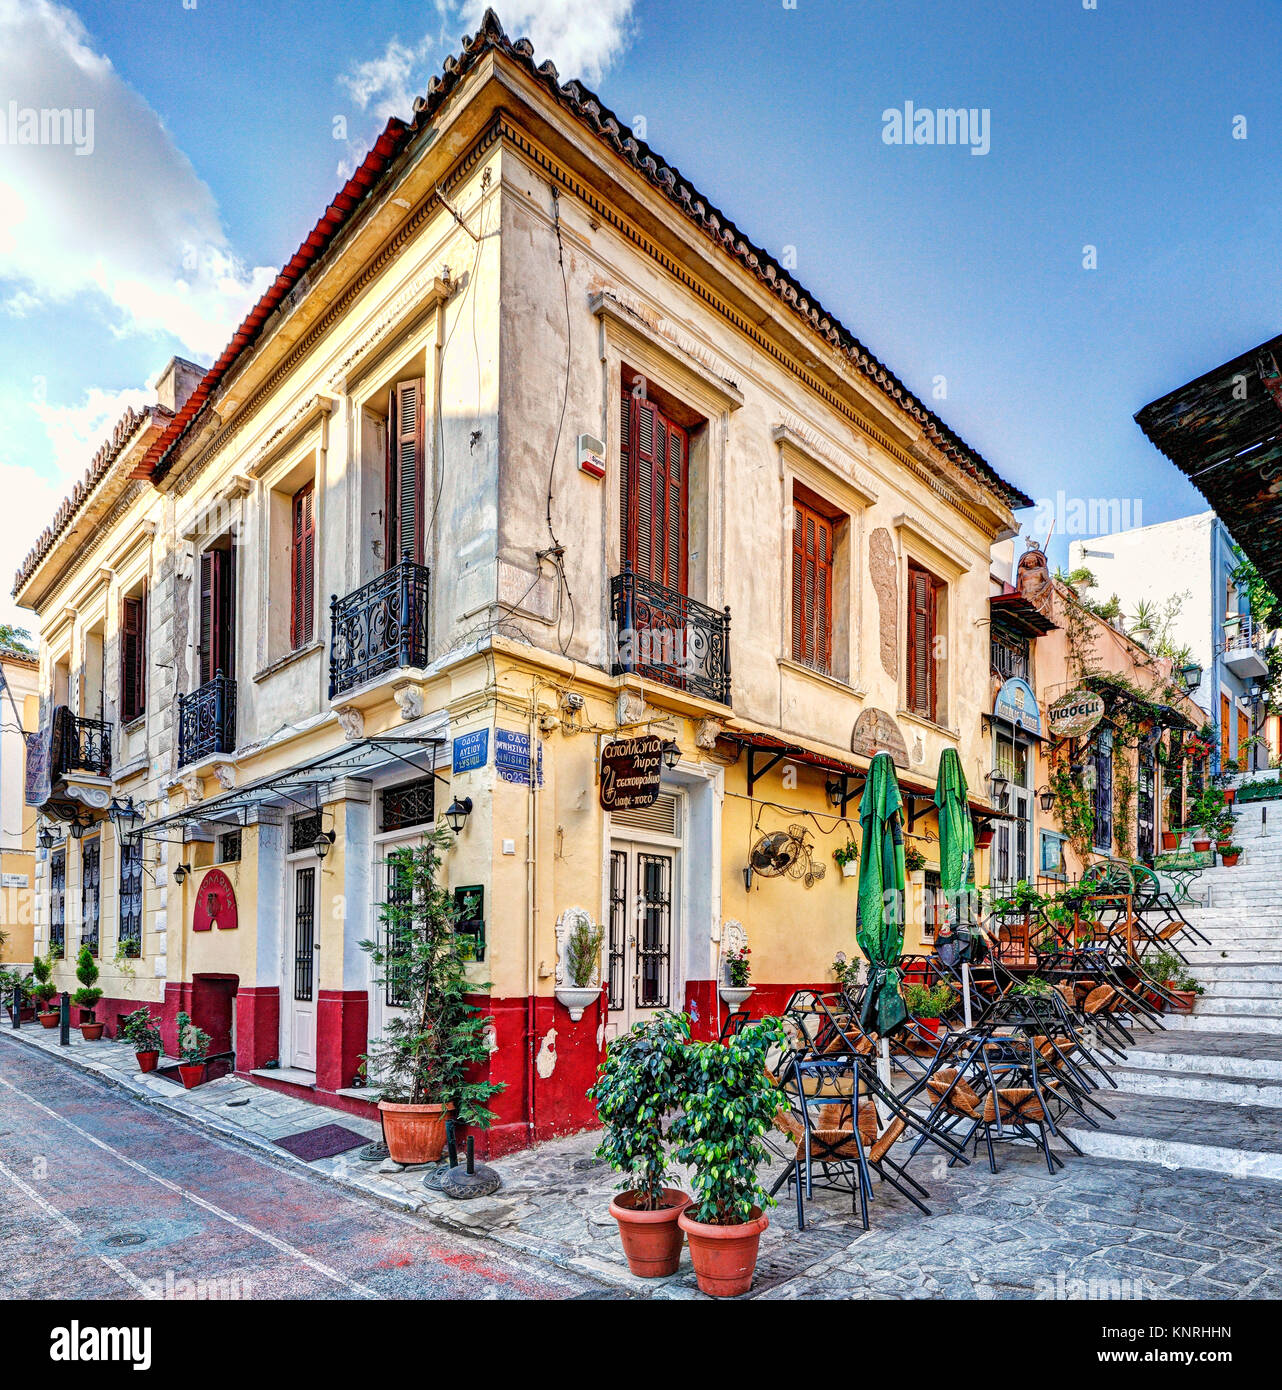 A picturesque cafe of Plaka in Athens, Greece - Stock Image